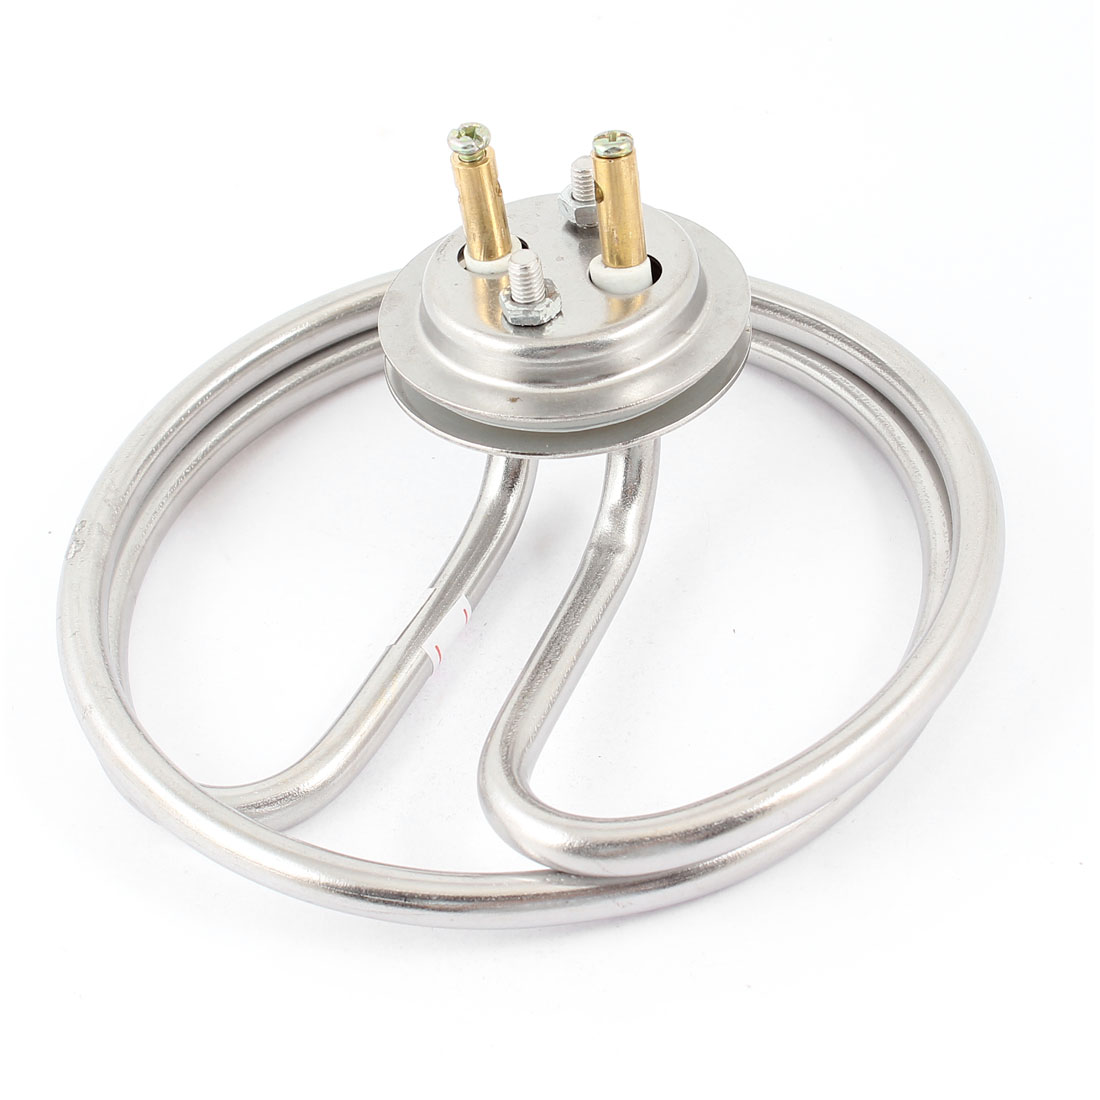 AC220V 3KW Stainless Steel Electric Heating Tube Water Heater Element Silver Tone